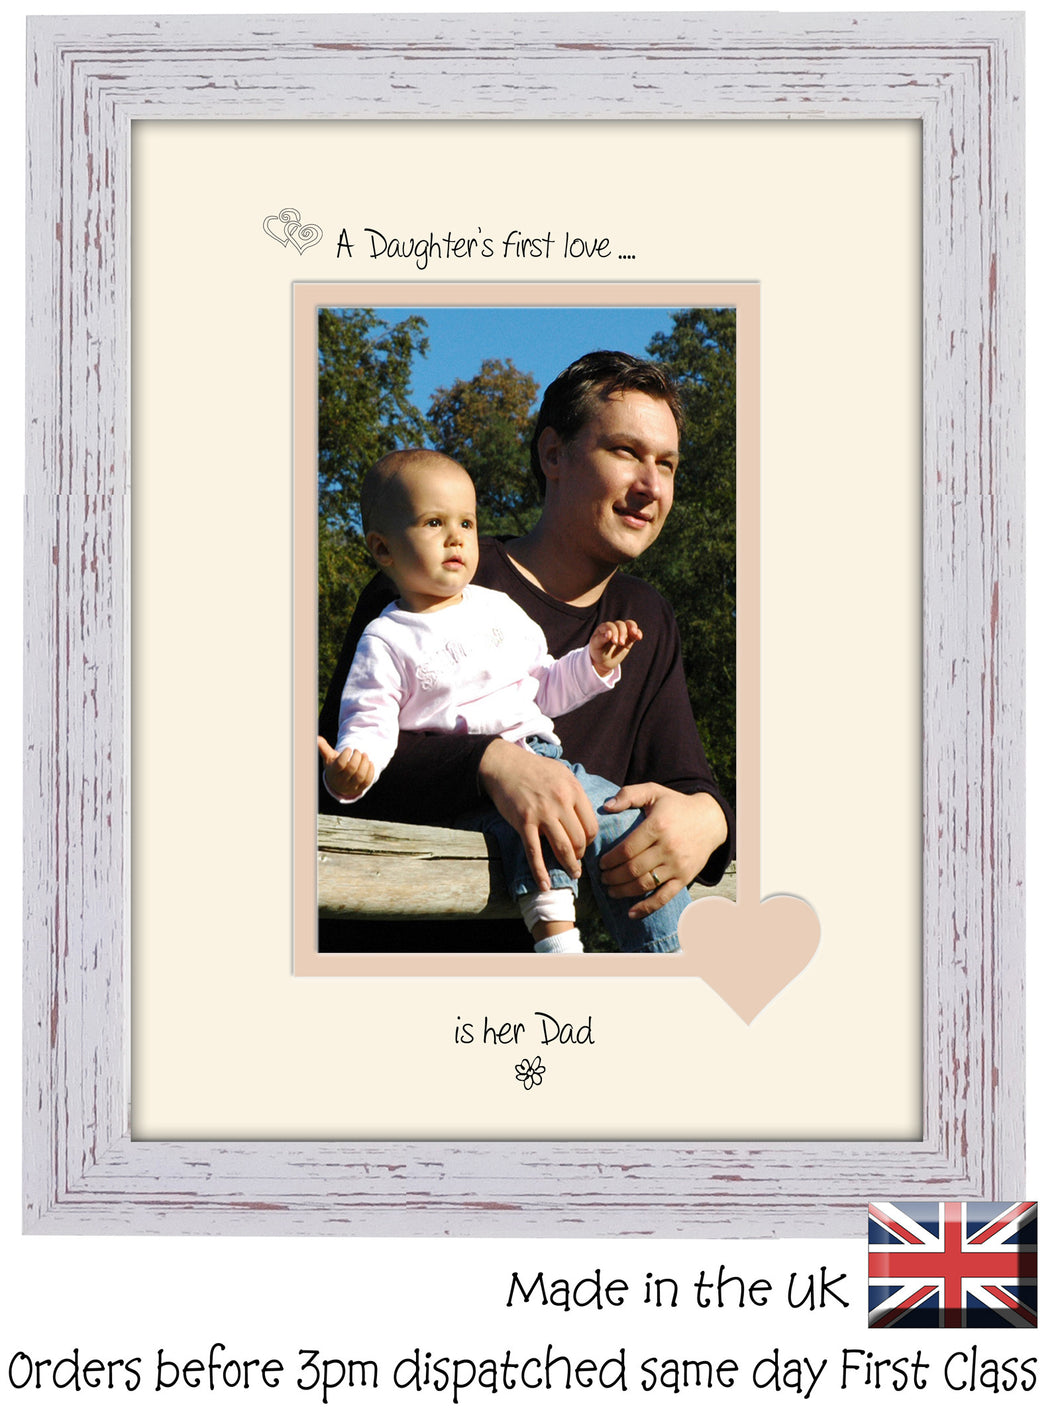 Dad Photo Frame - A Daughters first love is her Dad Portrait photo frame 6